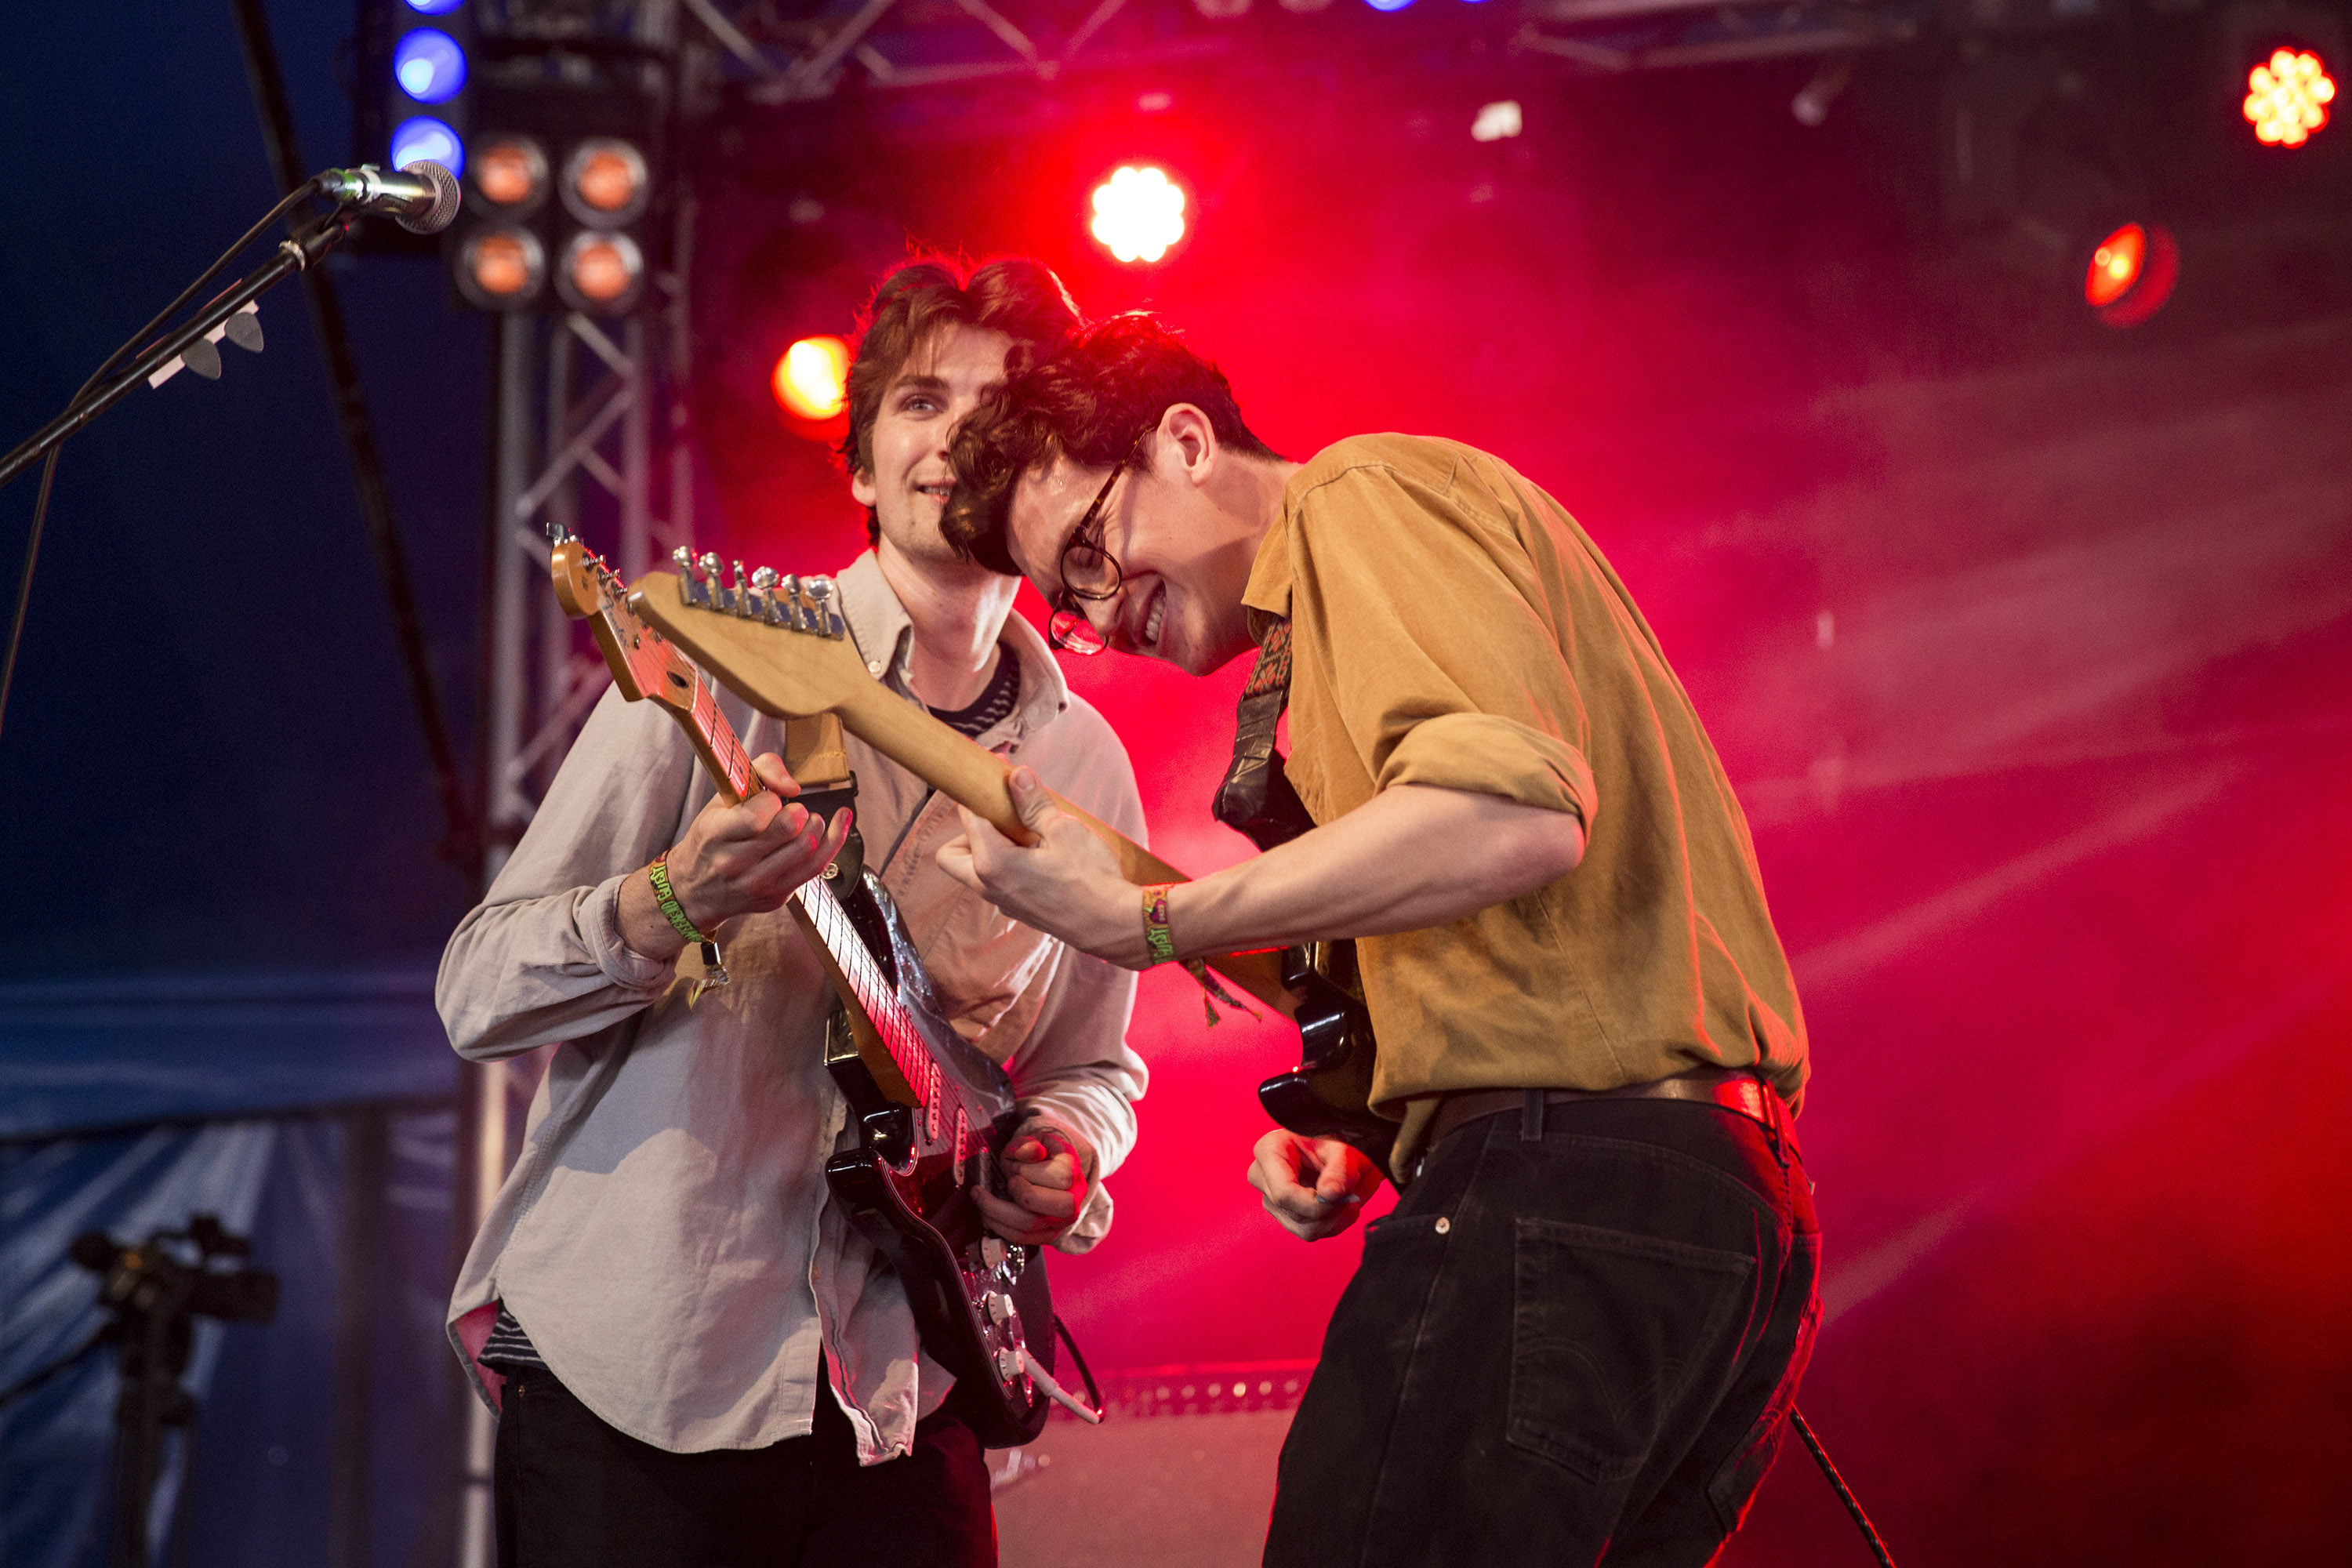 The Magic Gang go above and beyond at Reading 2016